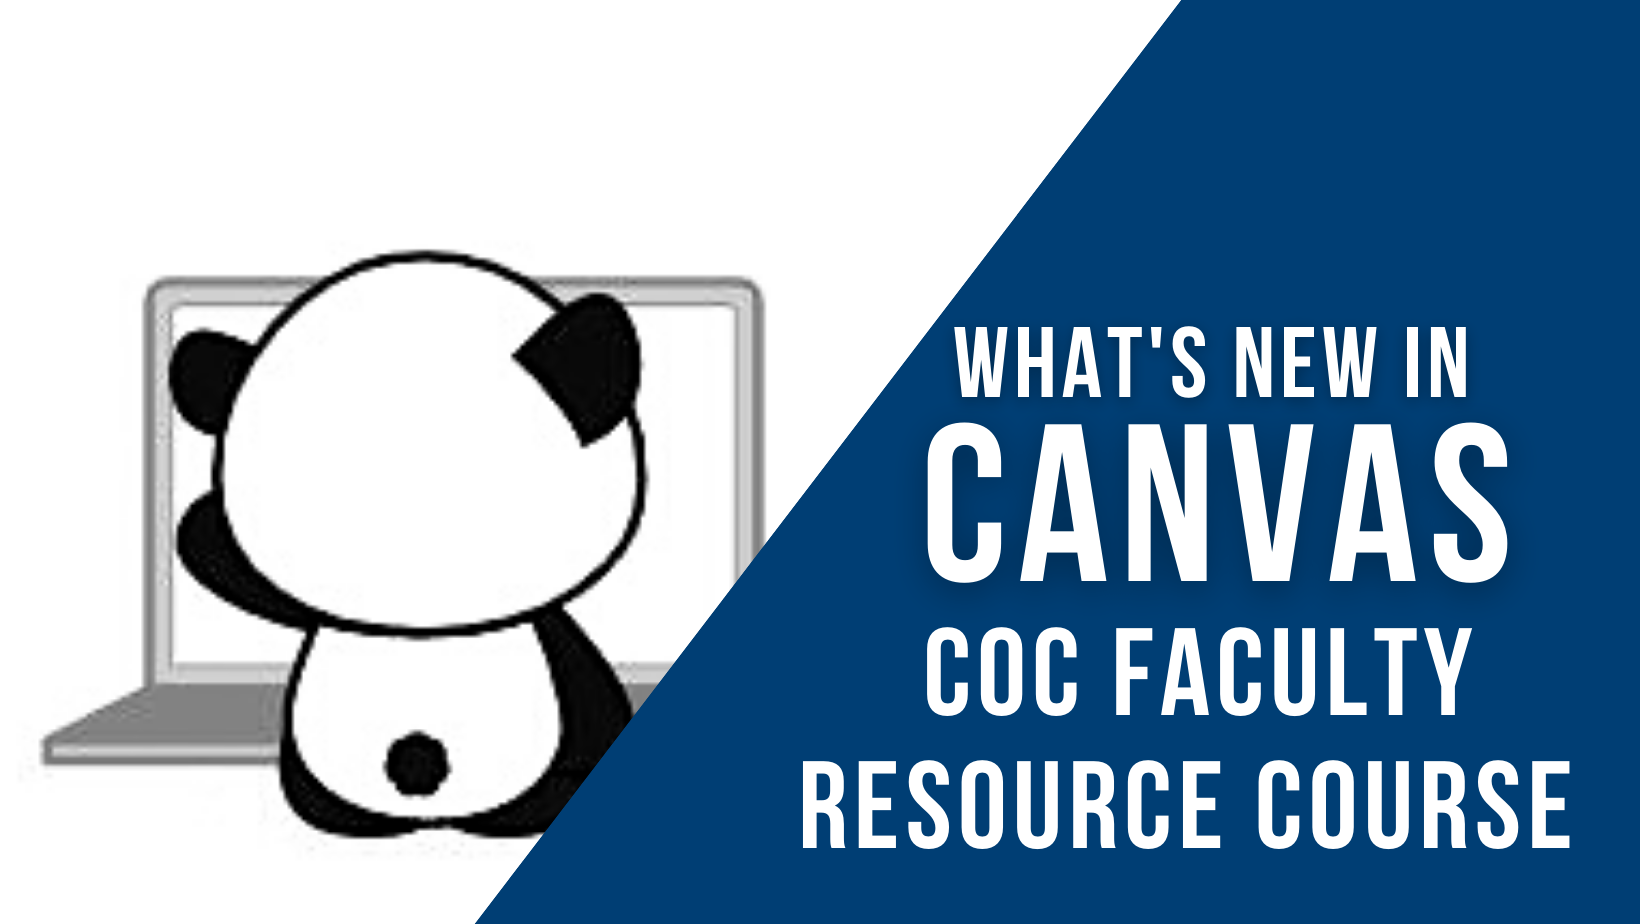 Faculty Resource Course - What's New in Canvas